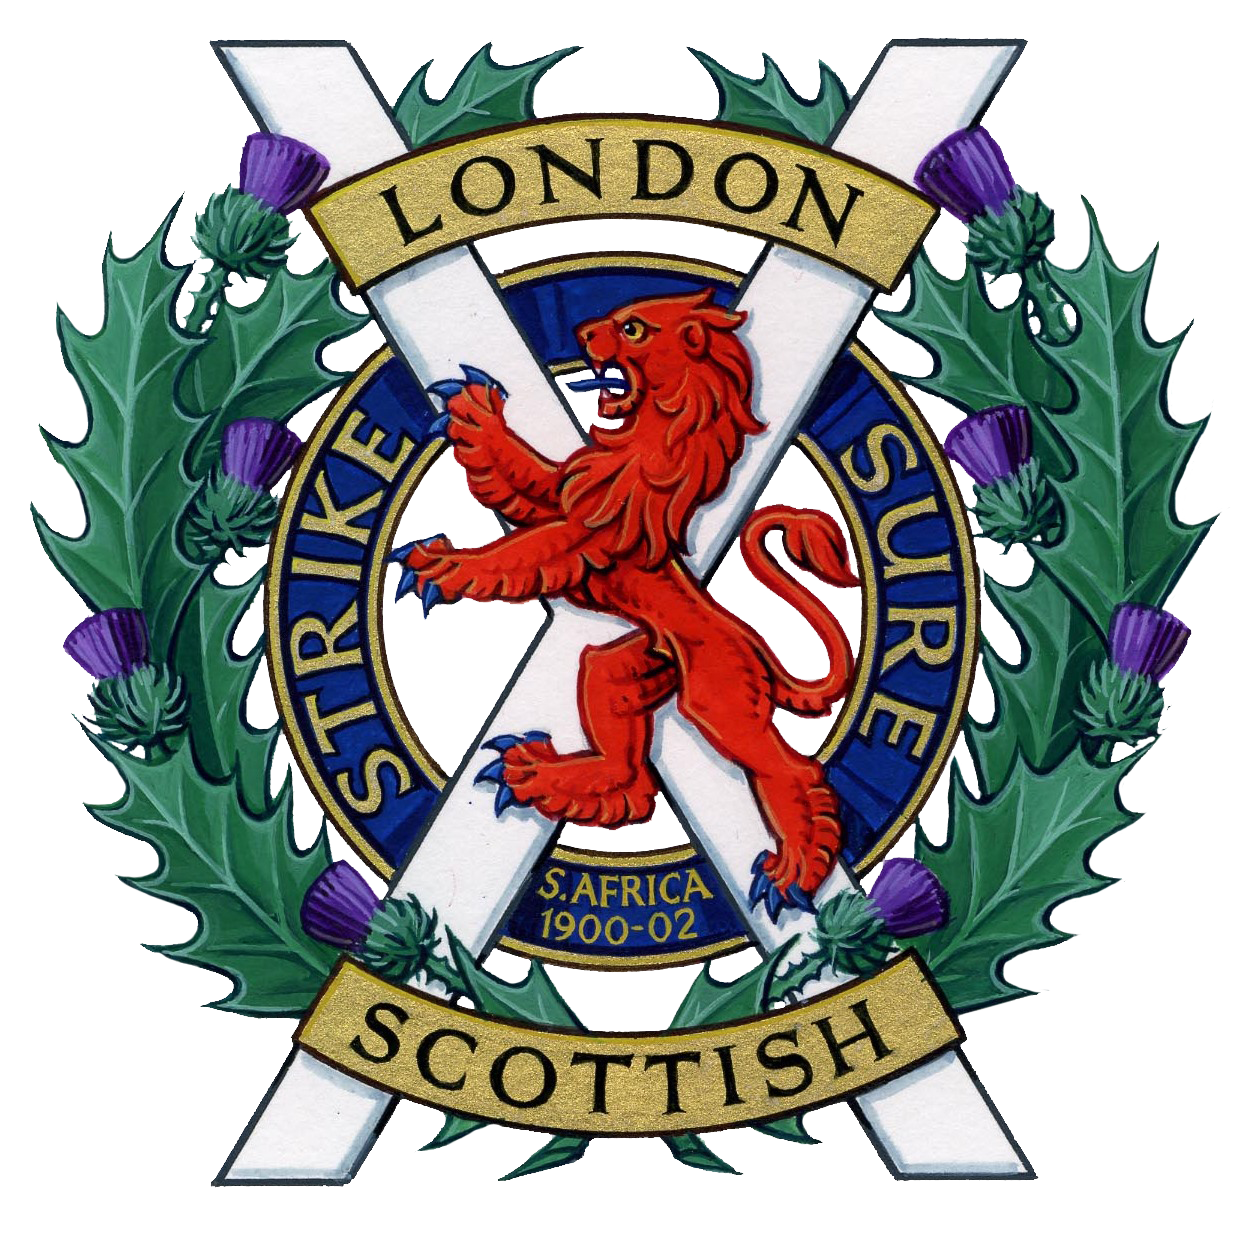 The London Scottish Regiment (Estb. 1859)